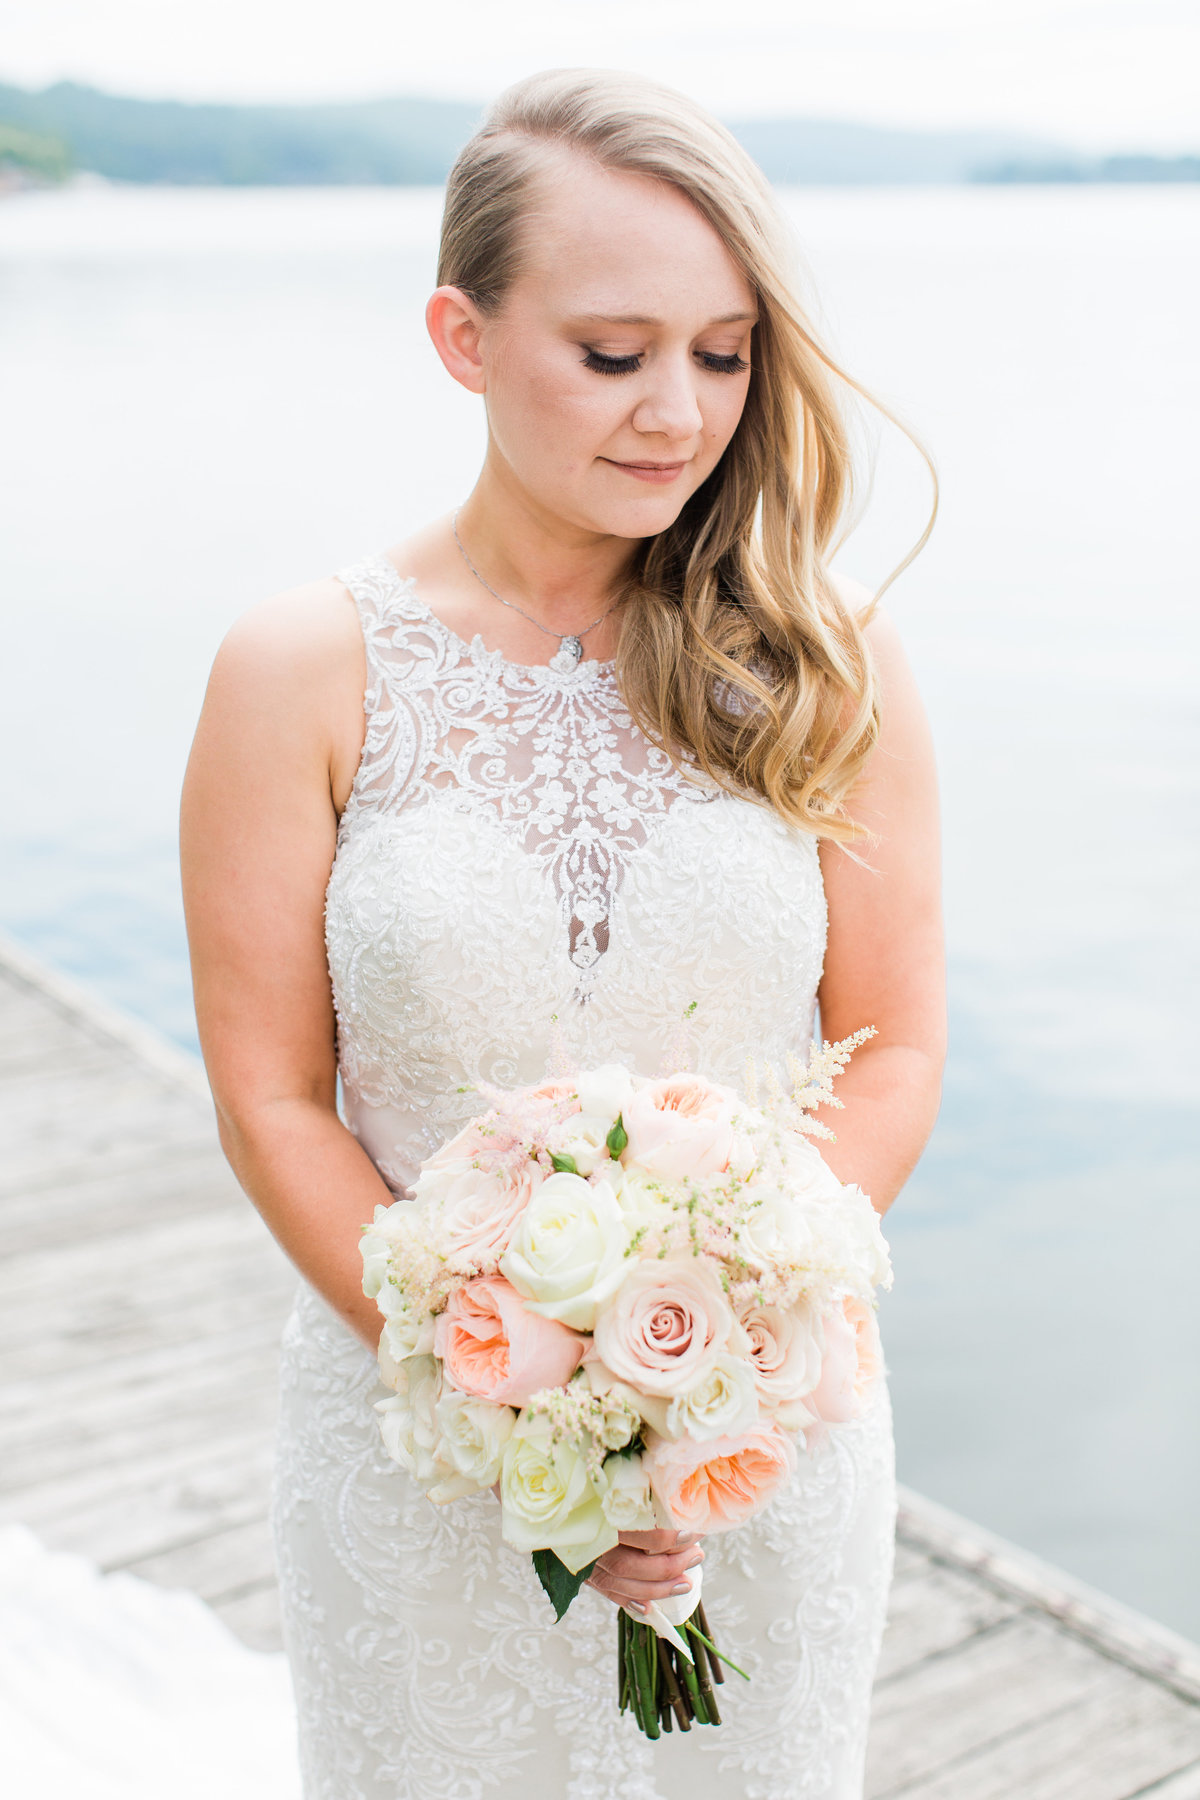 Elegant_Lake_Wedding_Inspriration